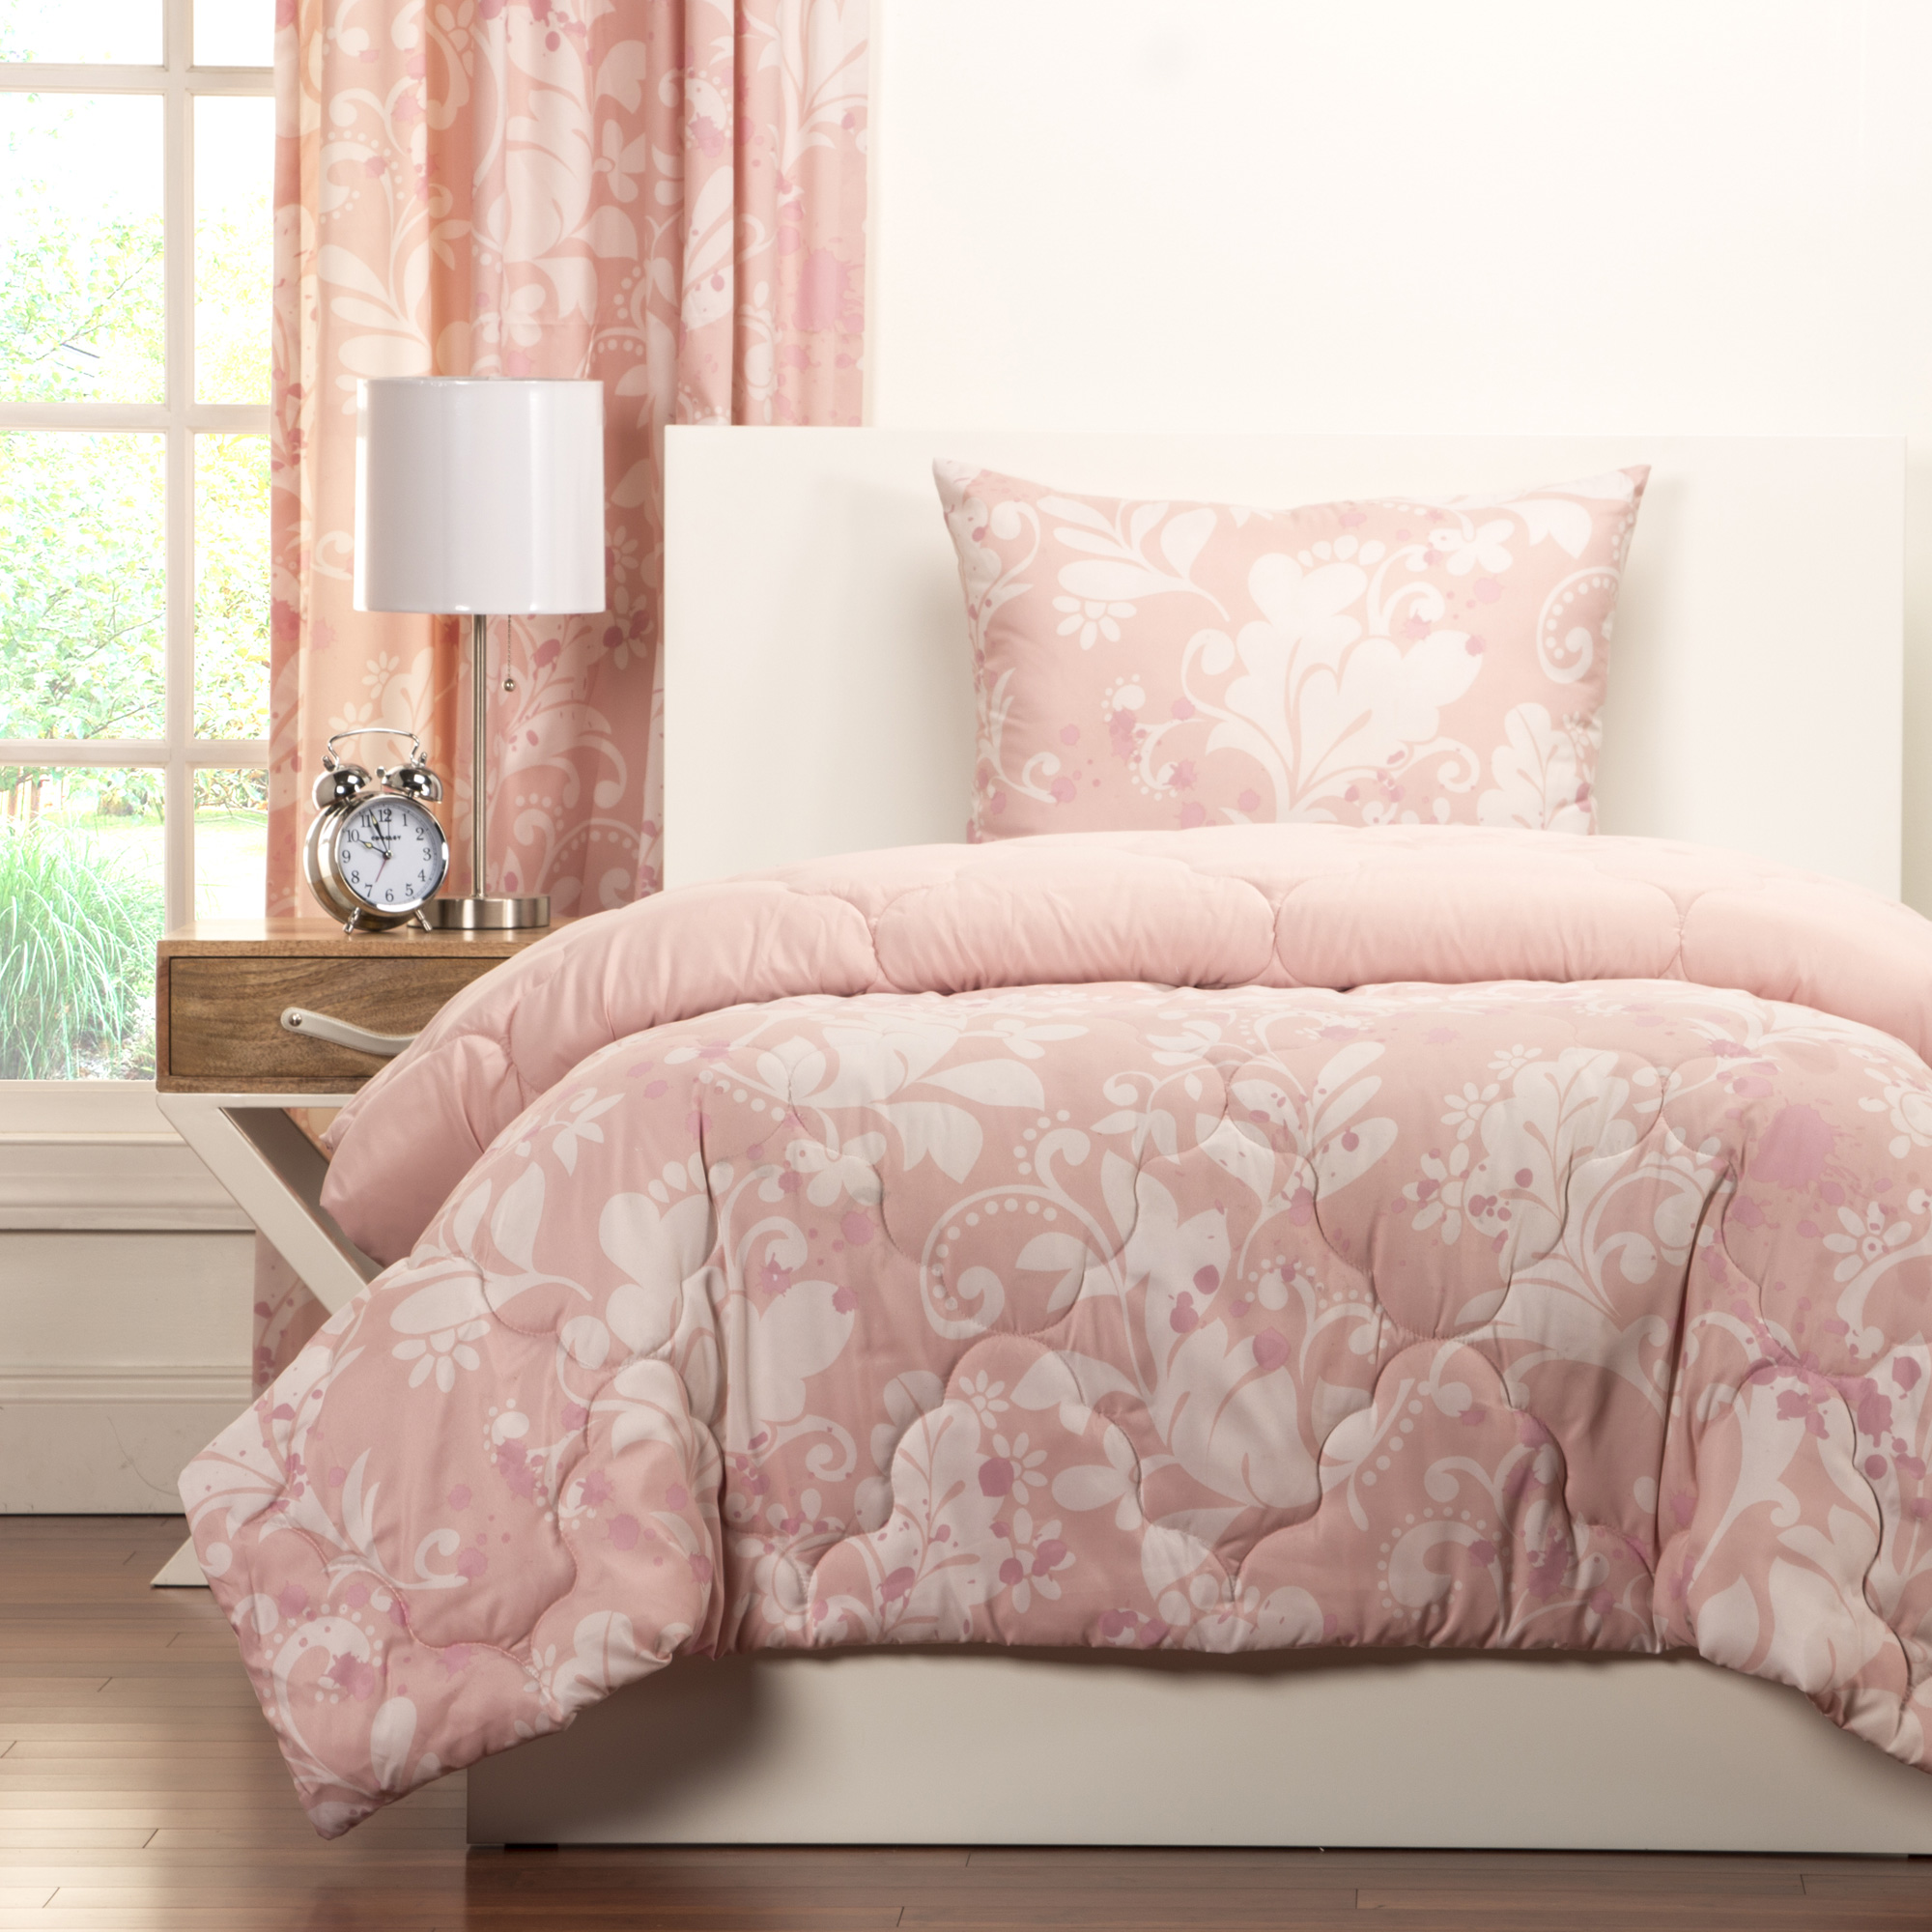 Sis Enterprises | Crayola Eloise 3 Piece Full/Queen Comforter Set | Pink